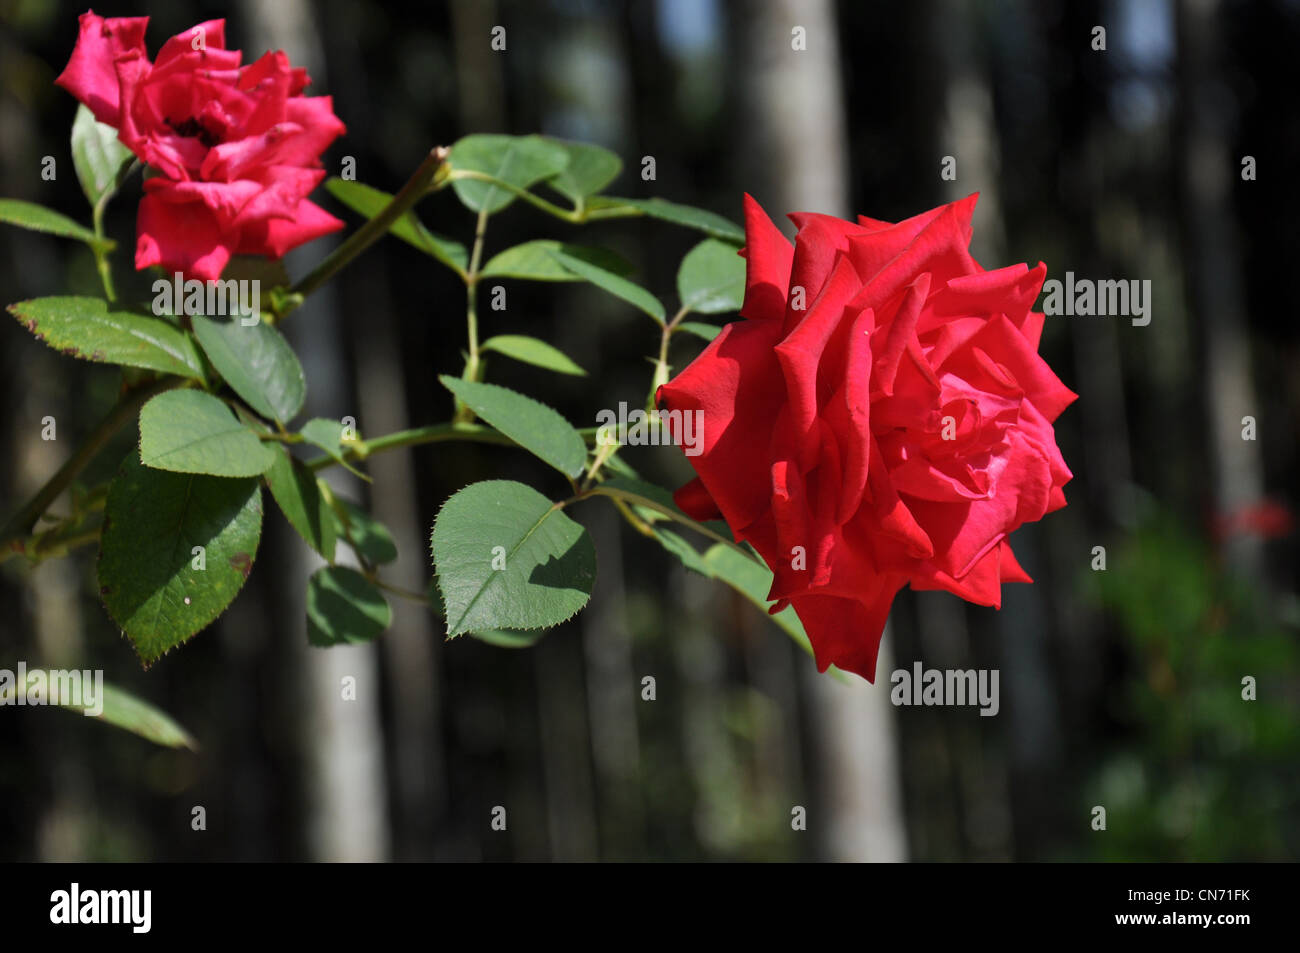 A close up of a Red Rose with stem - Stock Image